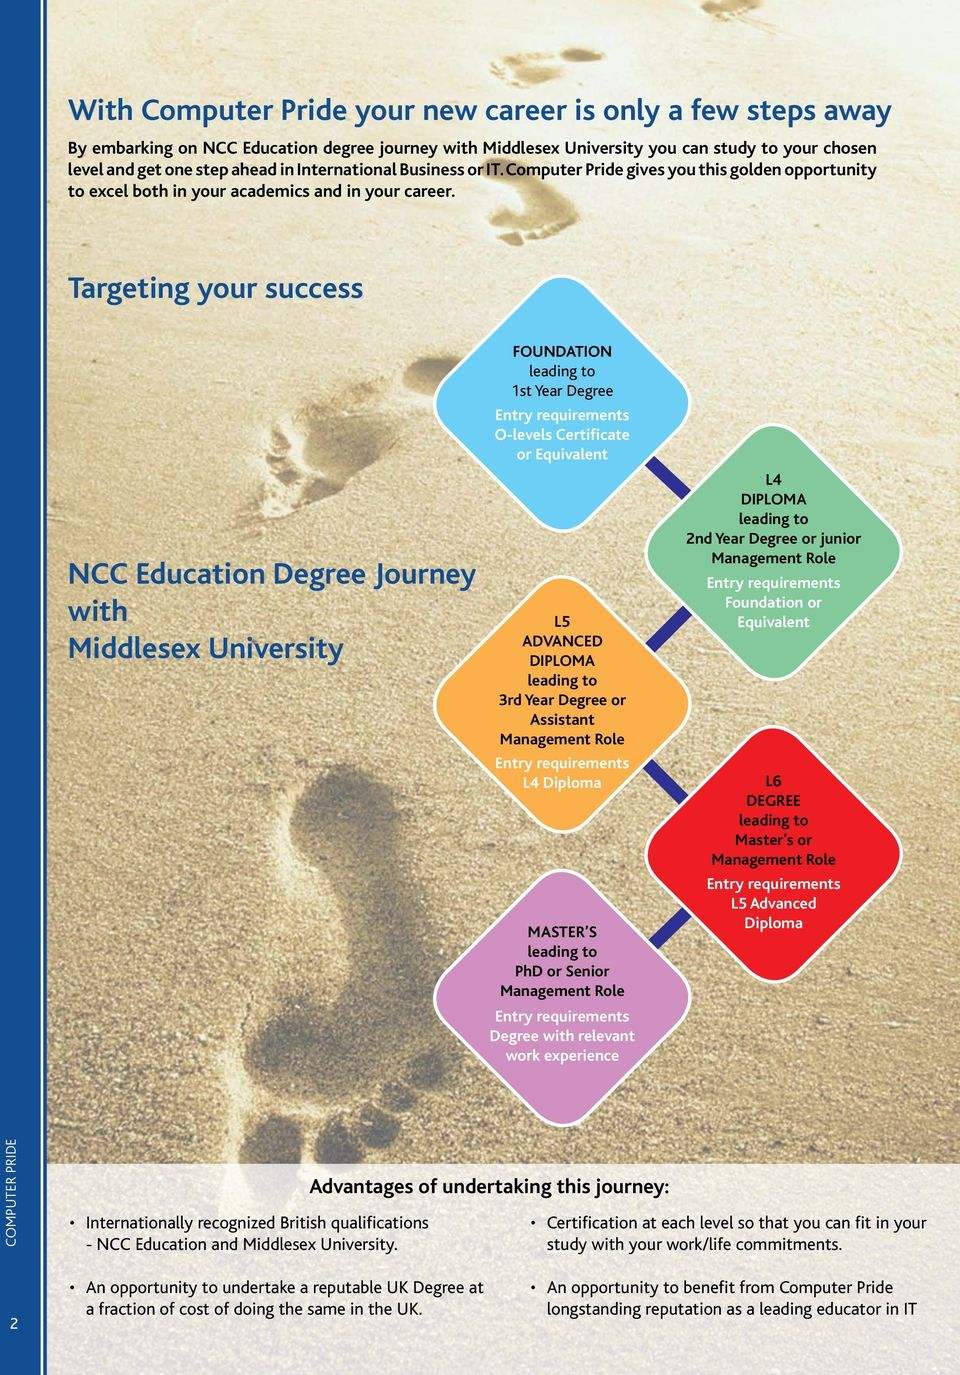 Targeting your success NCC Education Degree Journey with Middlesex University FOUNDATION leading to 1st Year Degree Entry requirements O-levels Certificate or Equivalent L5 ADVANCED DIPLOMA leading